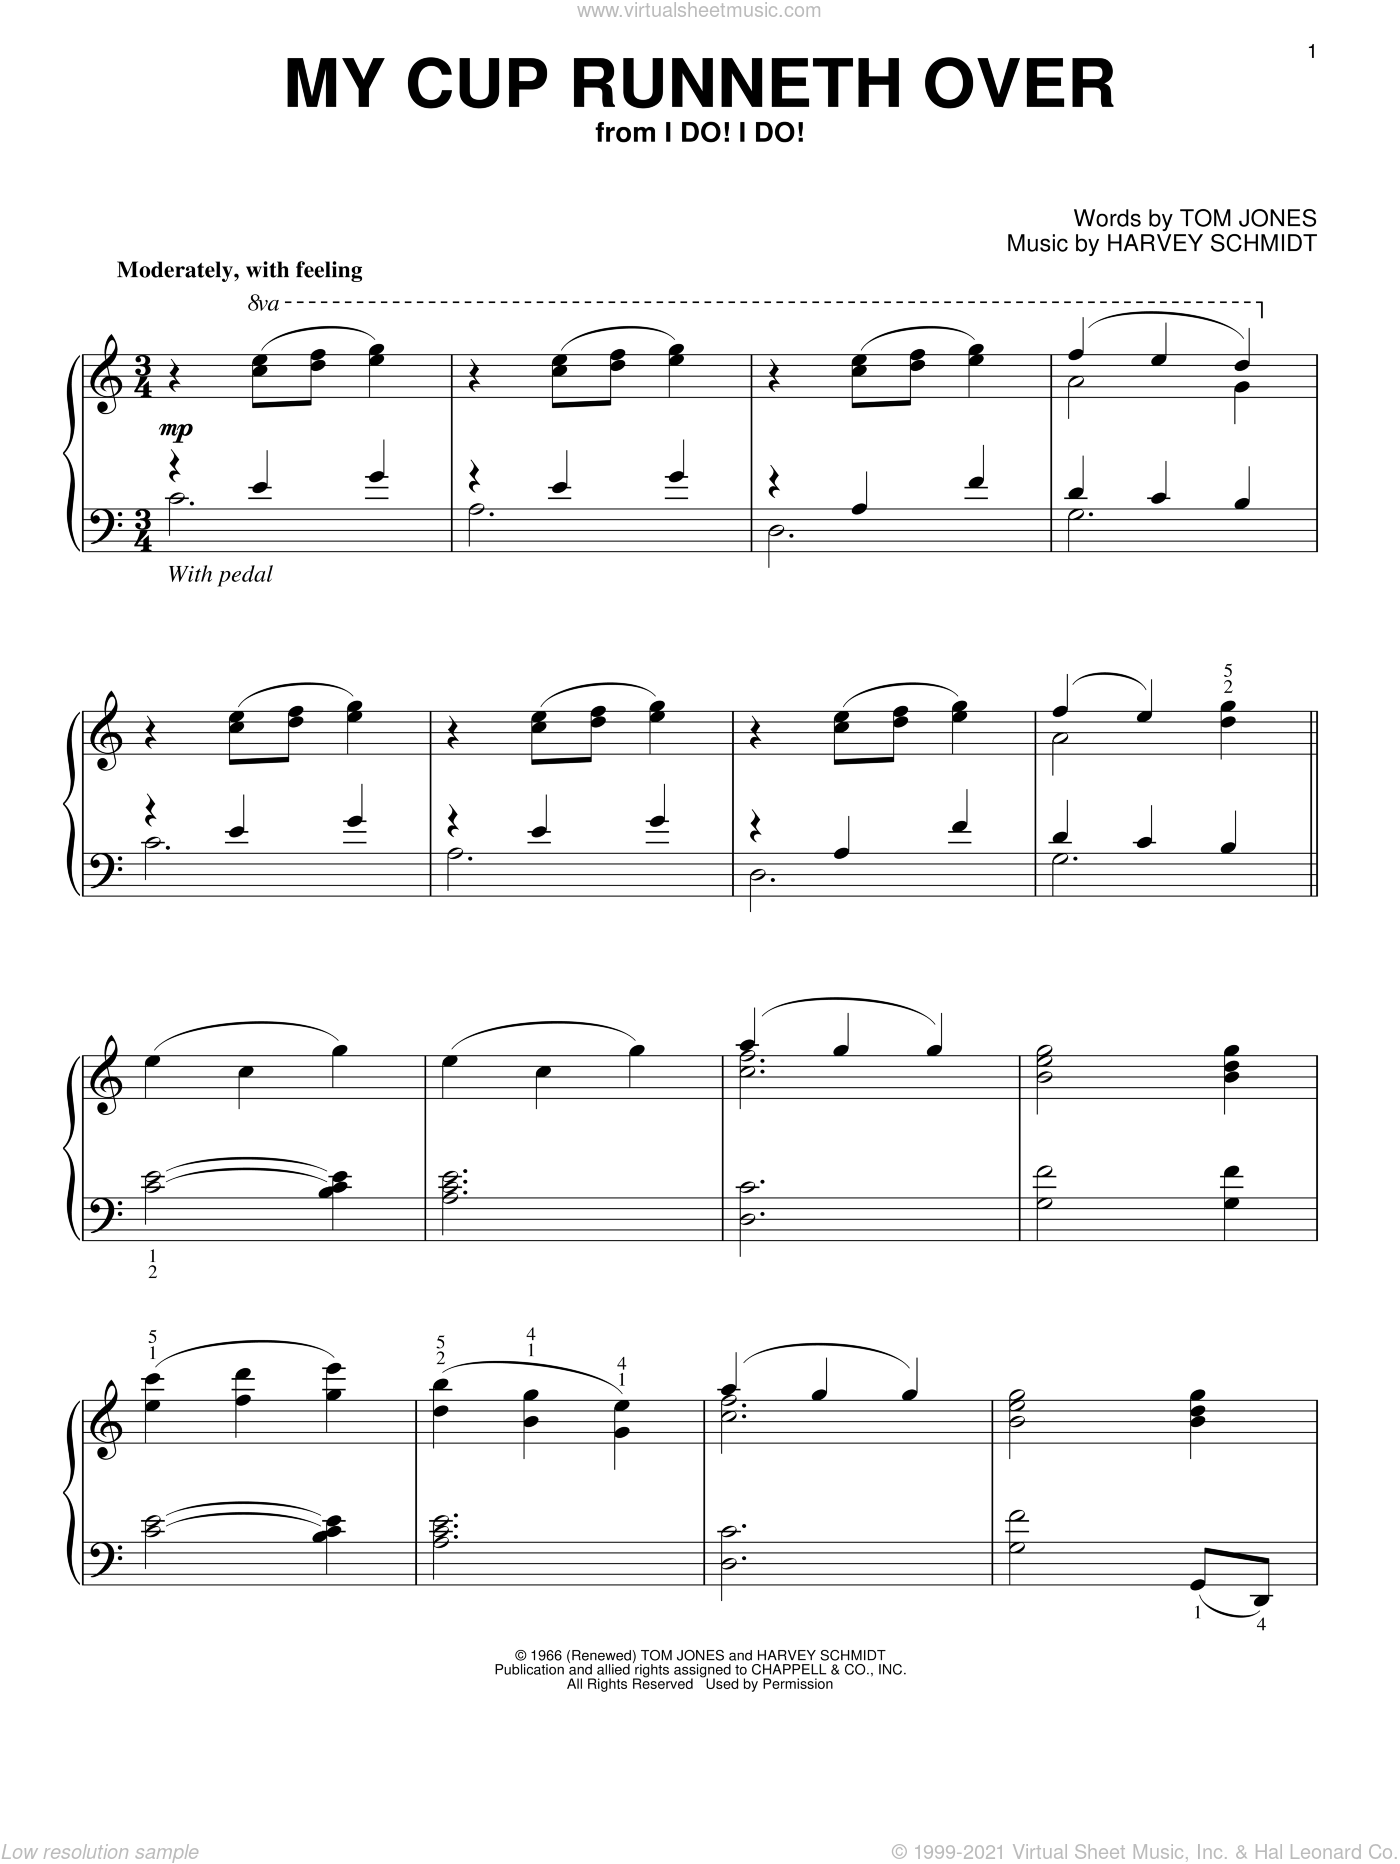 My Cup Runneth Over sheet music for piano solo by Ed Ames, Harvey Schmidt and Tom Jones, intermediate skill level